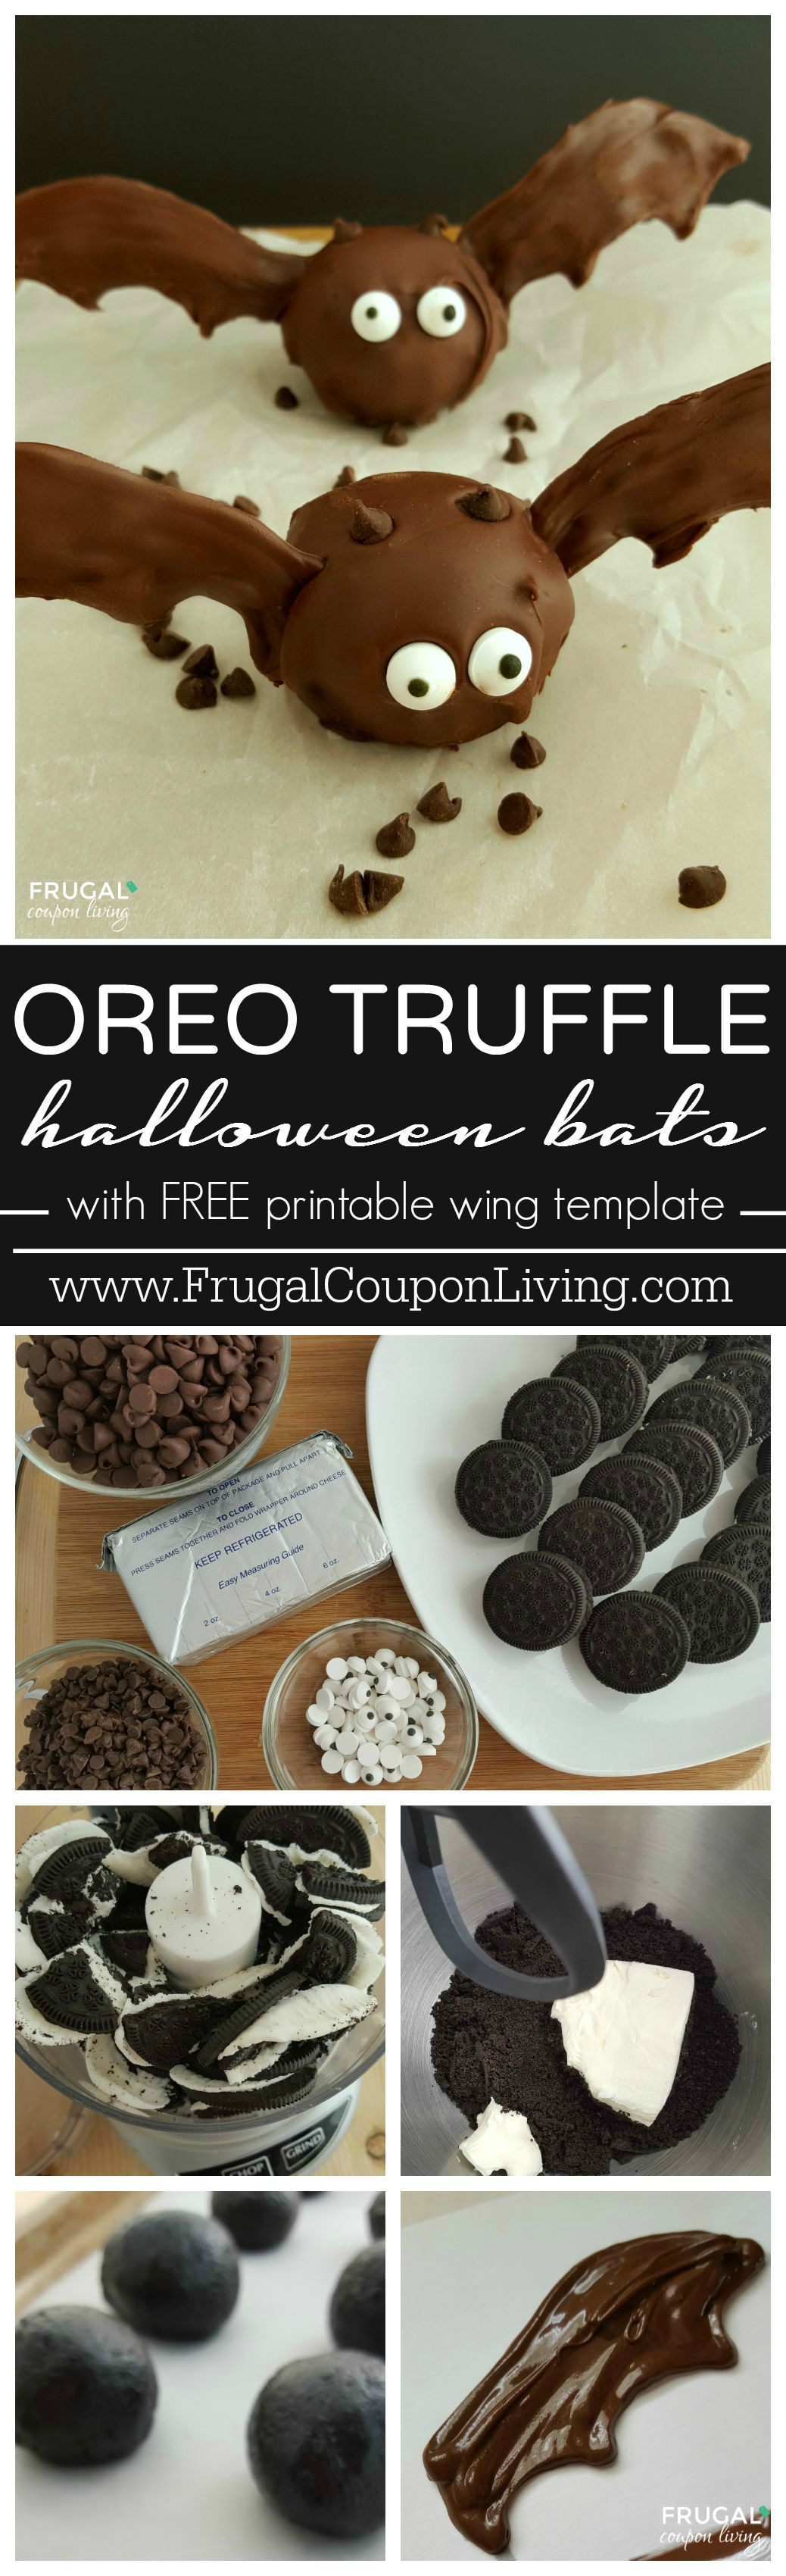 OREO-Truffle-Bats-For-Halloween-Frugal-Coupon-Living